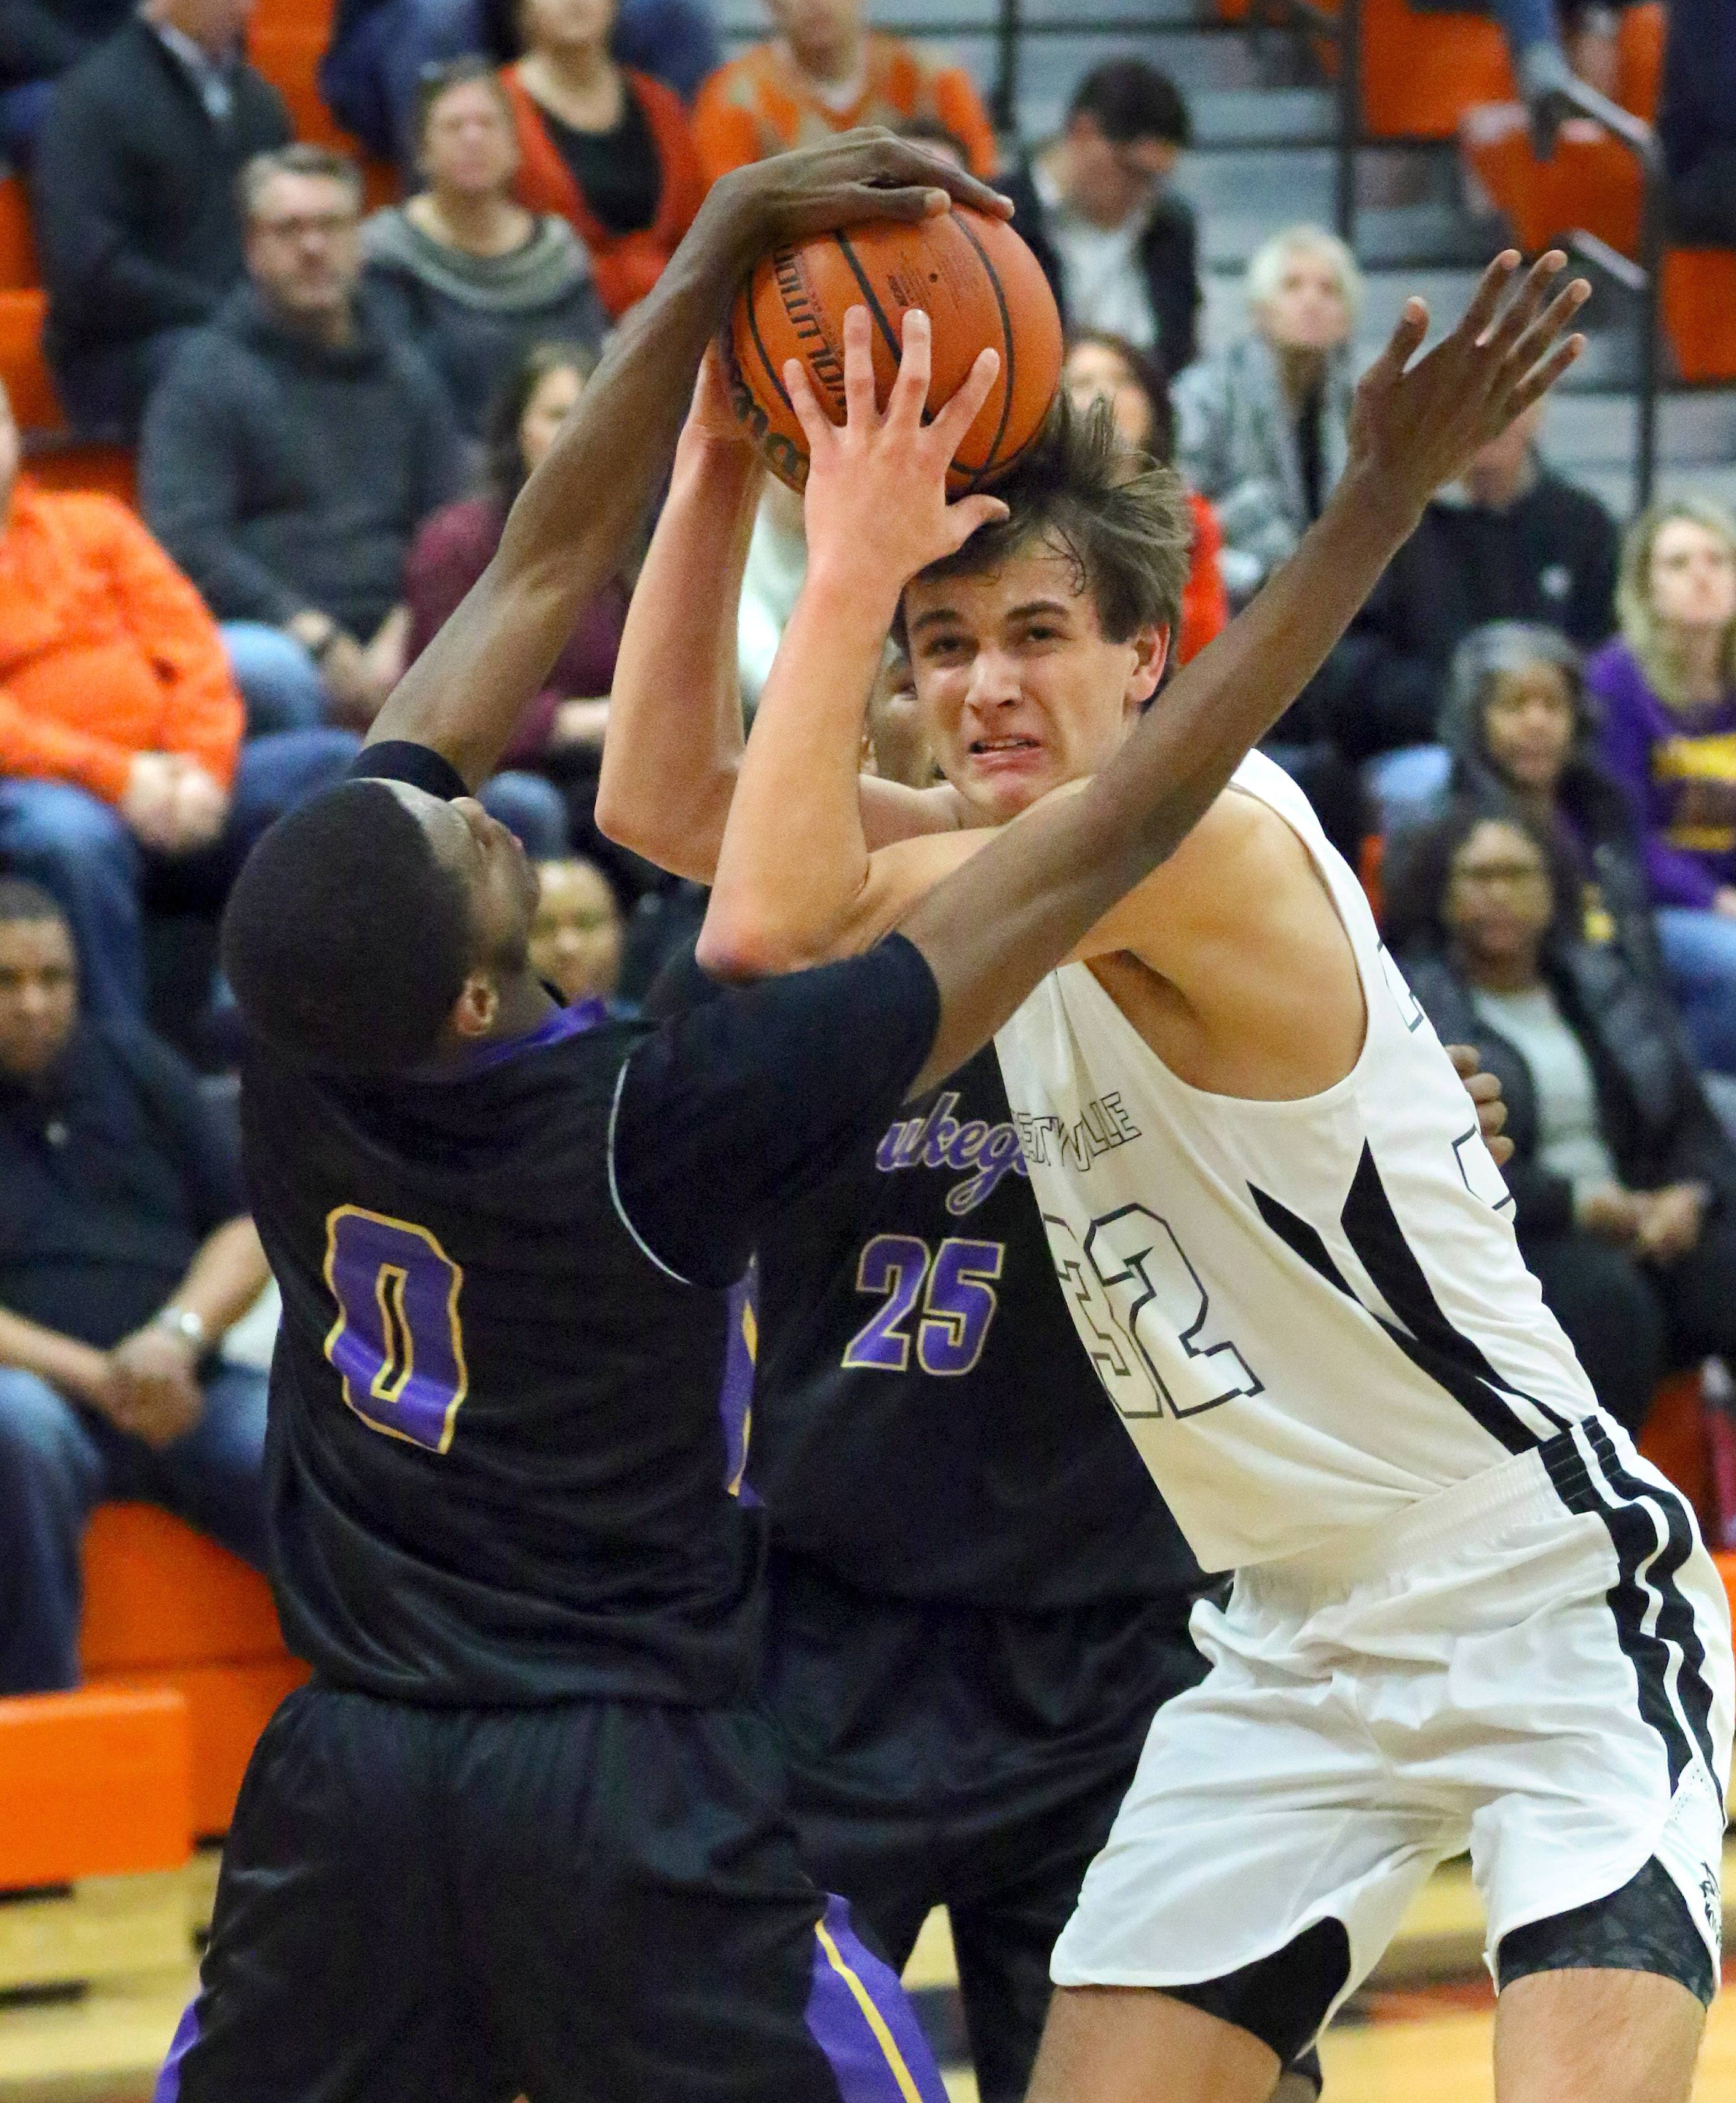 Libertyville's Travis Clark, right, battles for a rebound with Waukegan's Jaylin Cunningham (0) and Bryant Brown on Friday night in Libertyville.